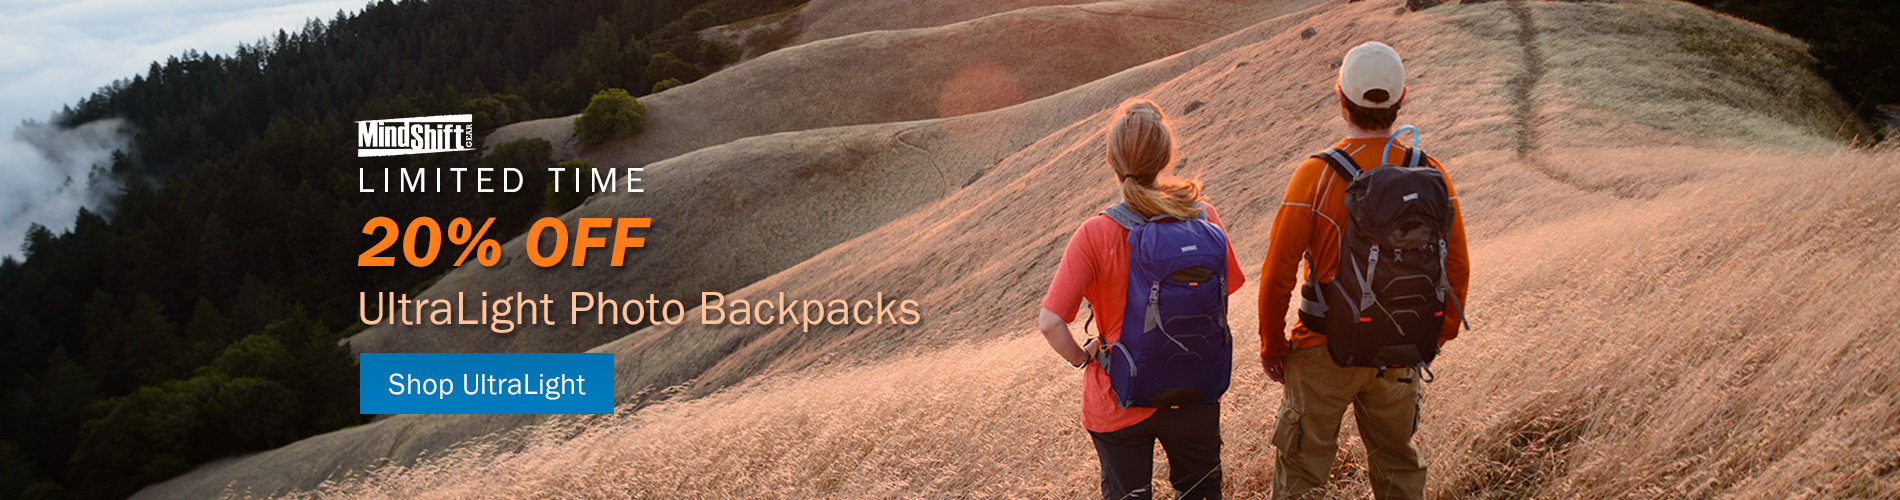 Limited Time! 20% Off UltraLight Photo Backpacks by MindShift Gear. Shop UltraLight >